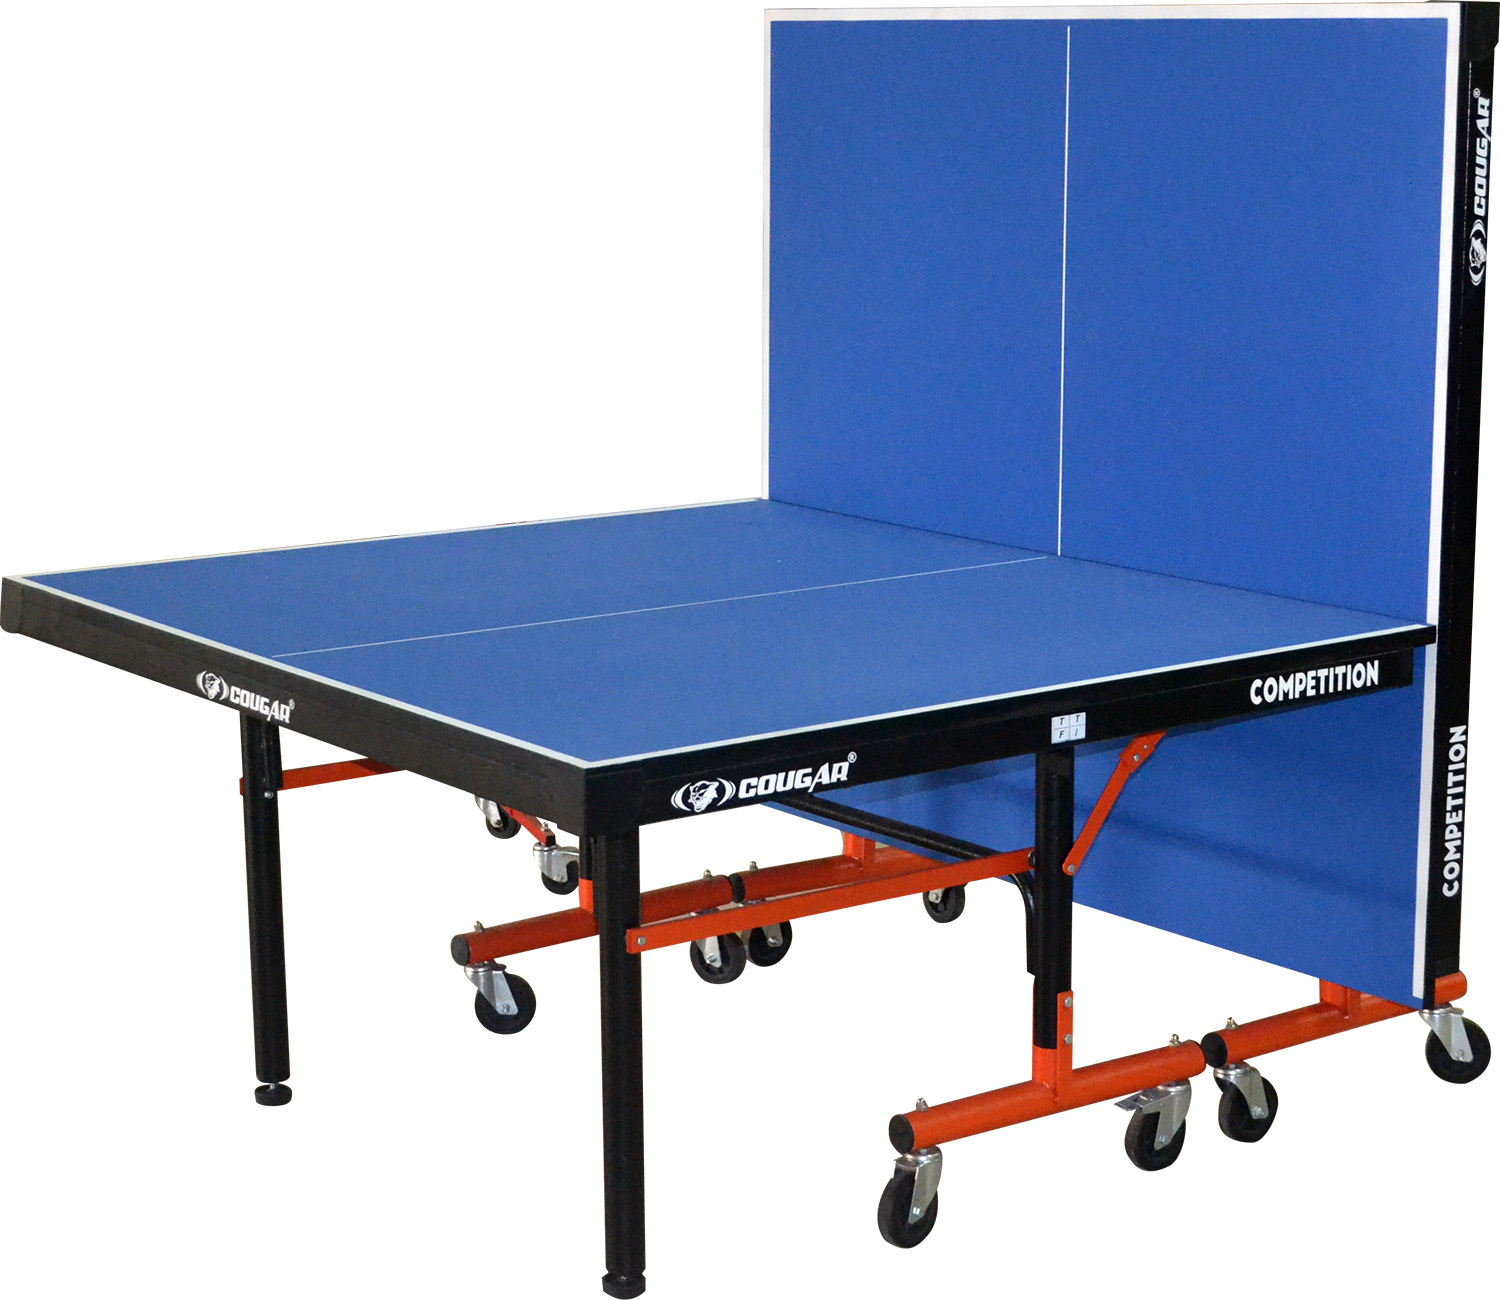 Buy Cougar Competition Table Tennis Table 25mm Sportsuncle